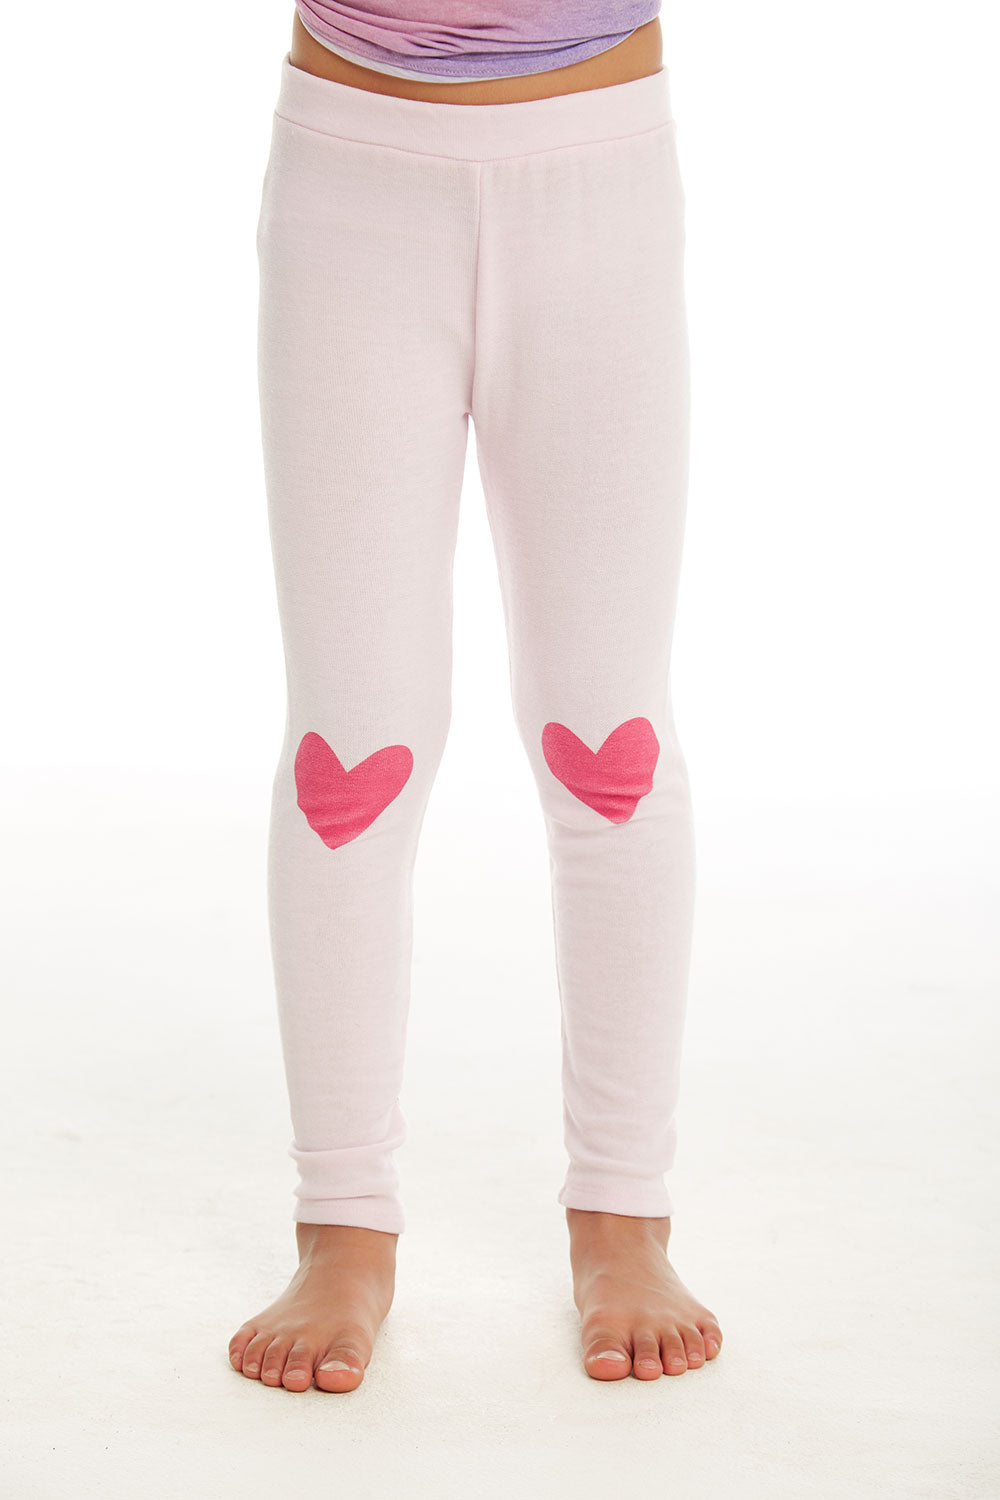 Heart Pants GIRLS chaserbrand4.myshopify.com